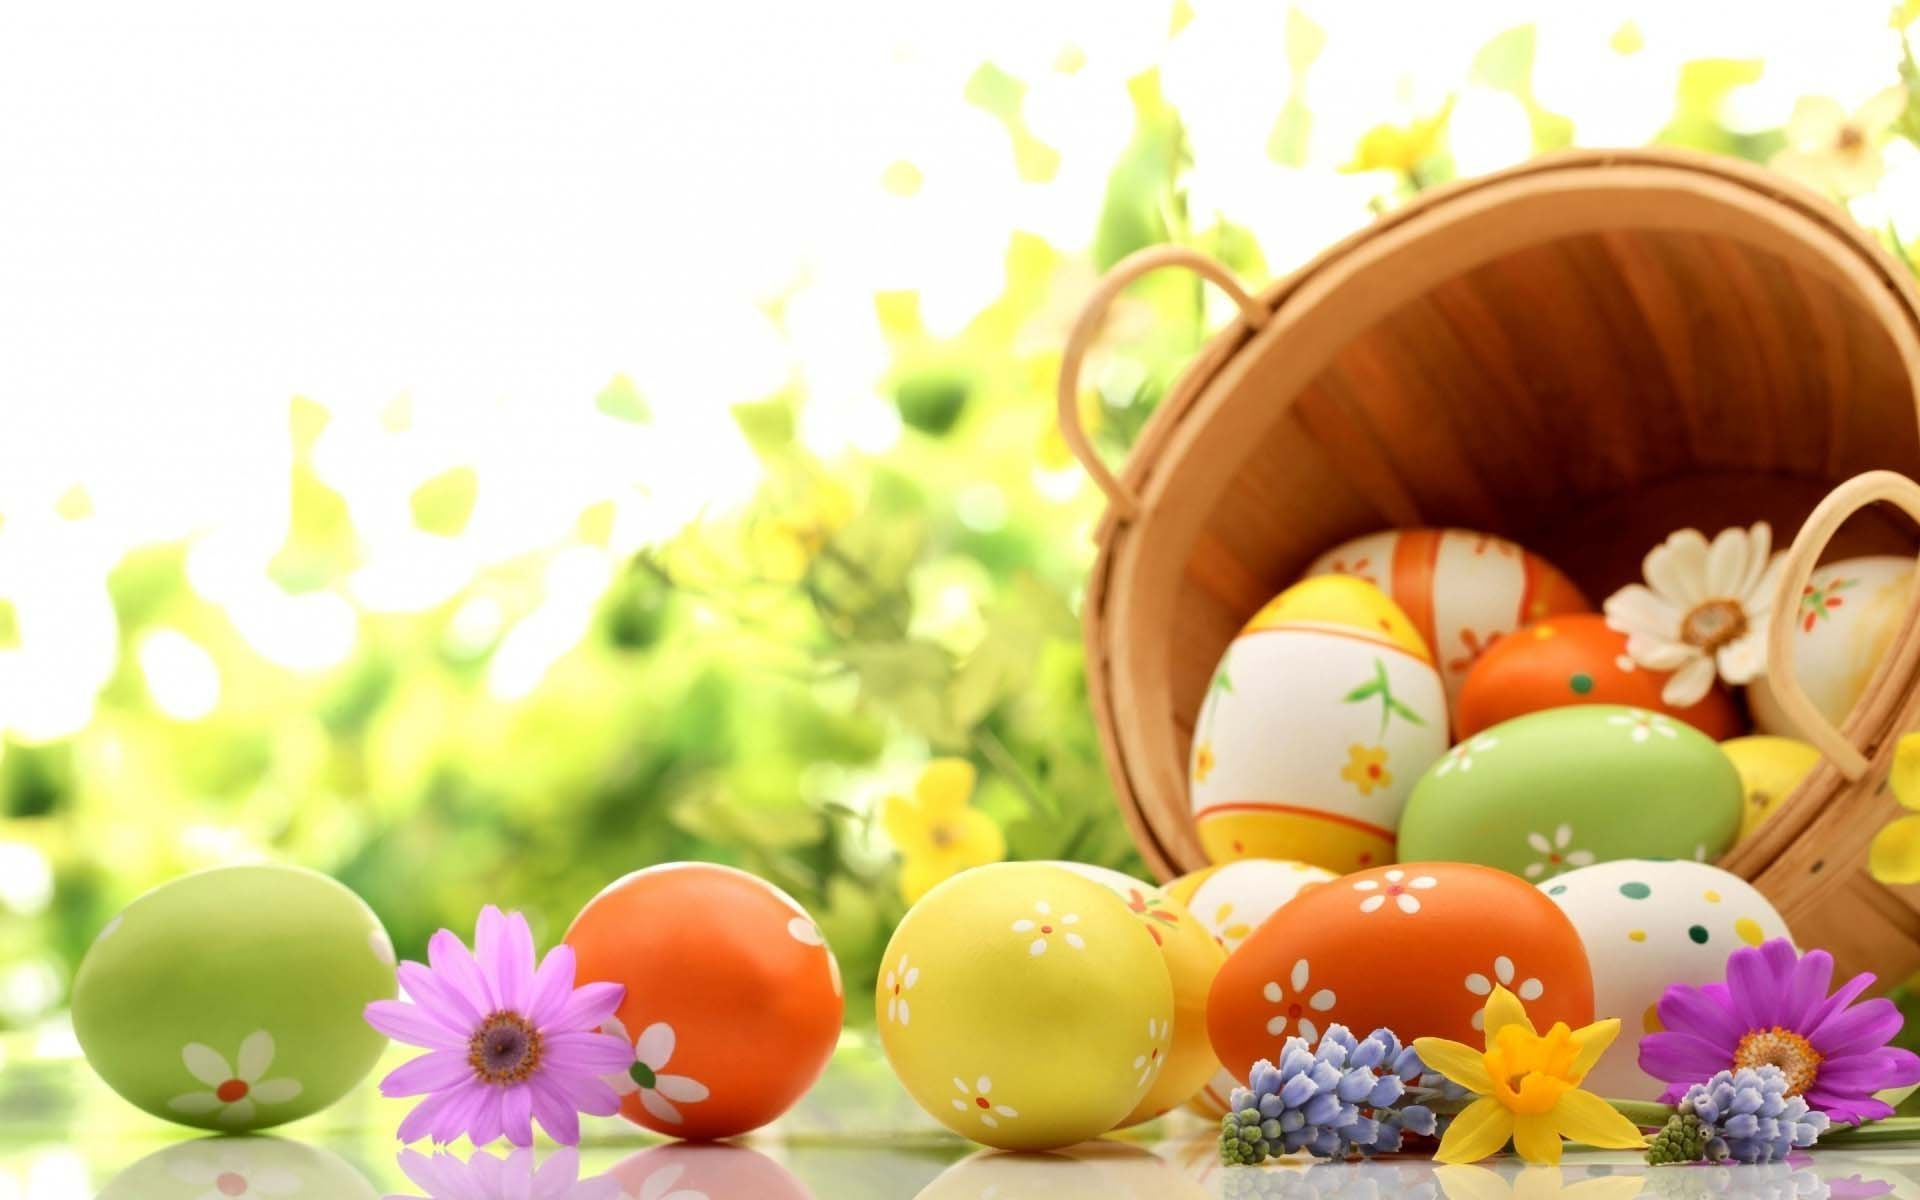 20+ Happy Easter Wallpapers, Backgrounds, Images